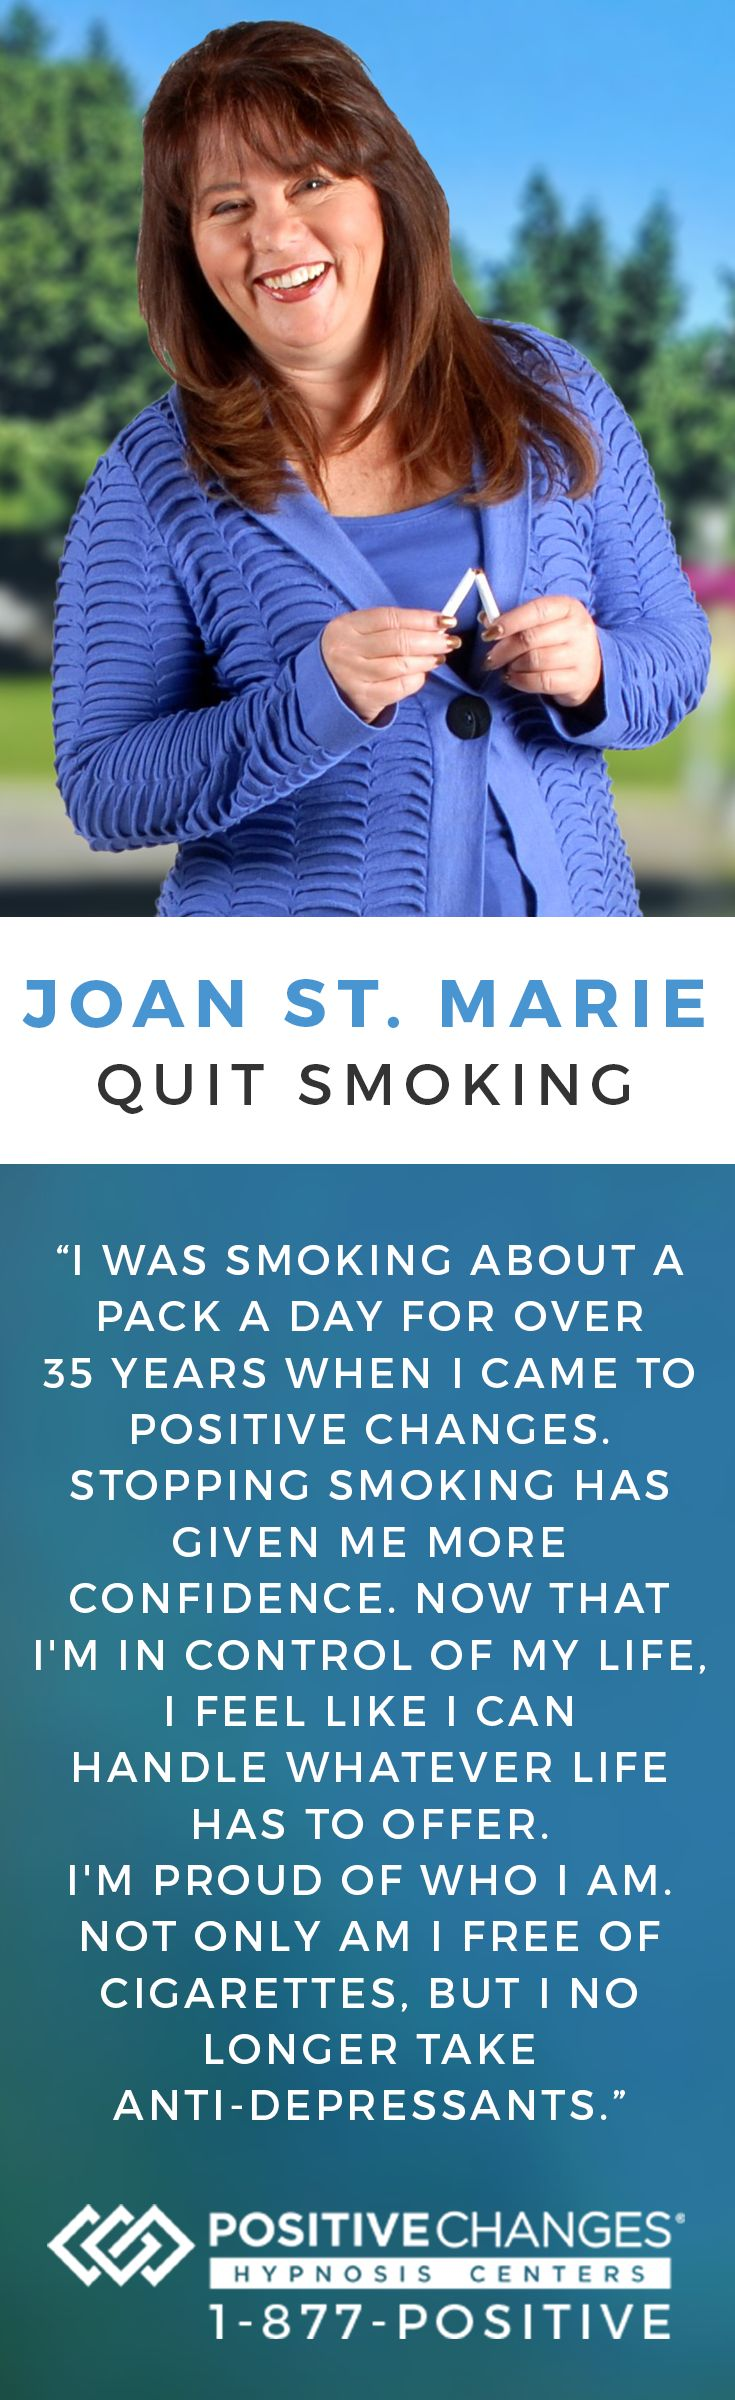 Joan St. Marie was able to successfully quit smoking with Positive Changes Hypnosis. Our mission is to help people make Positive Changes in their lives. We have given tens of thousands of people the power to change their habits, behaviors and lives safely and effectively. To learn more, give us a call at 877-POSITIVE today!